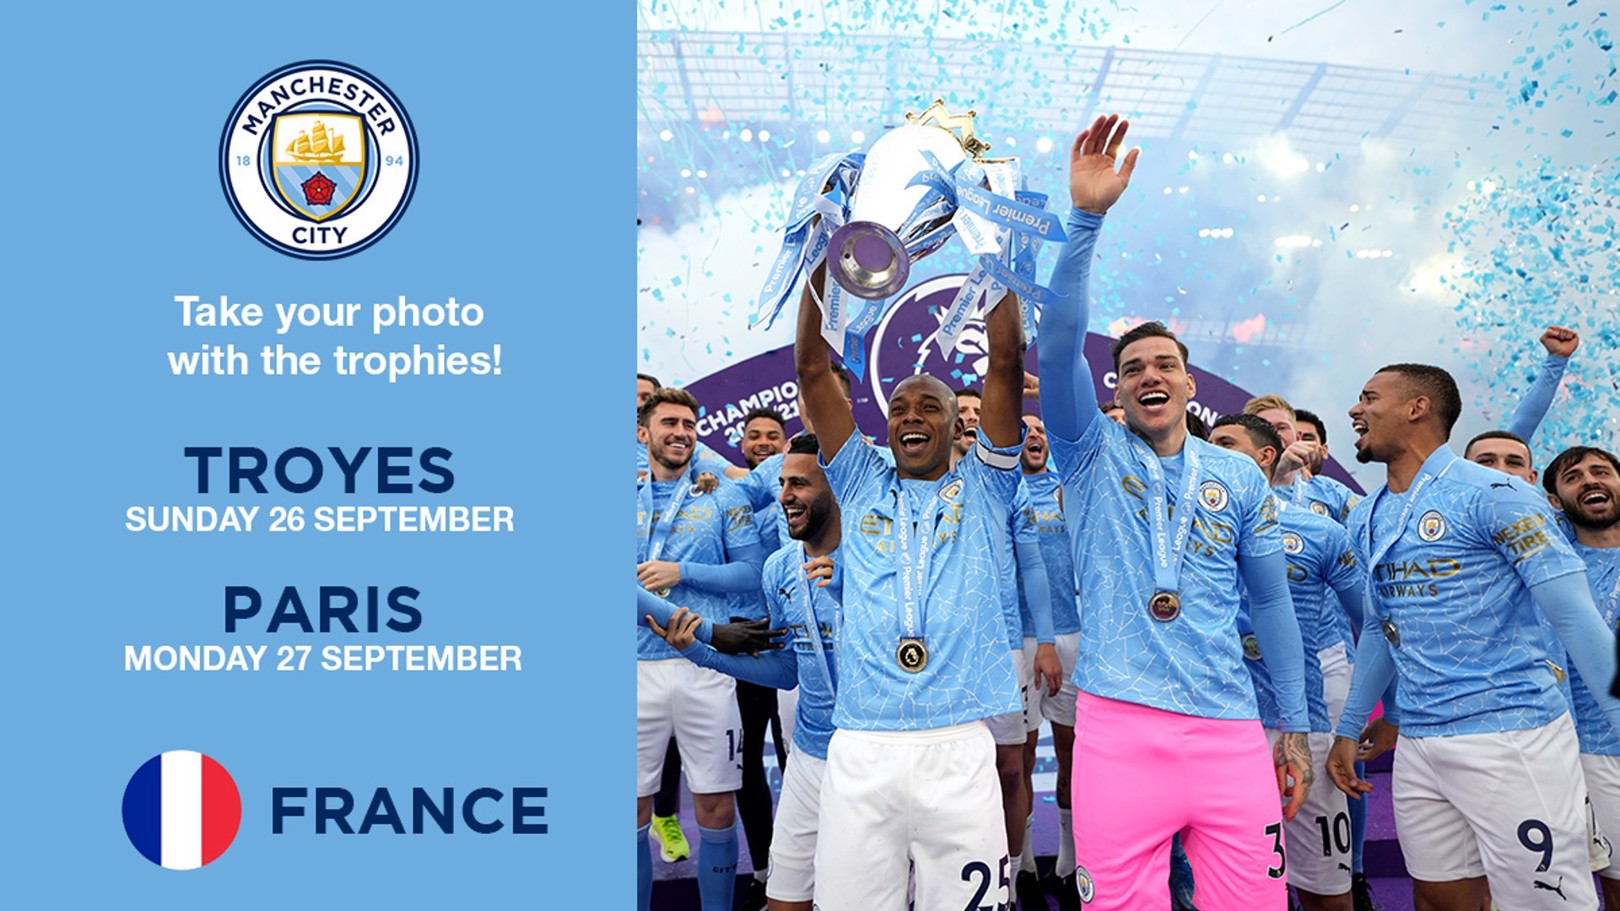 Premier League and Carabao Cup trophies to visit France!